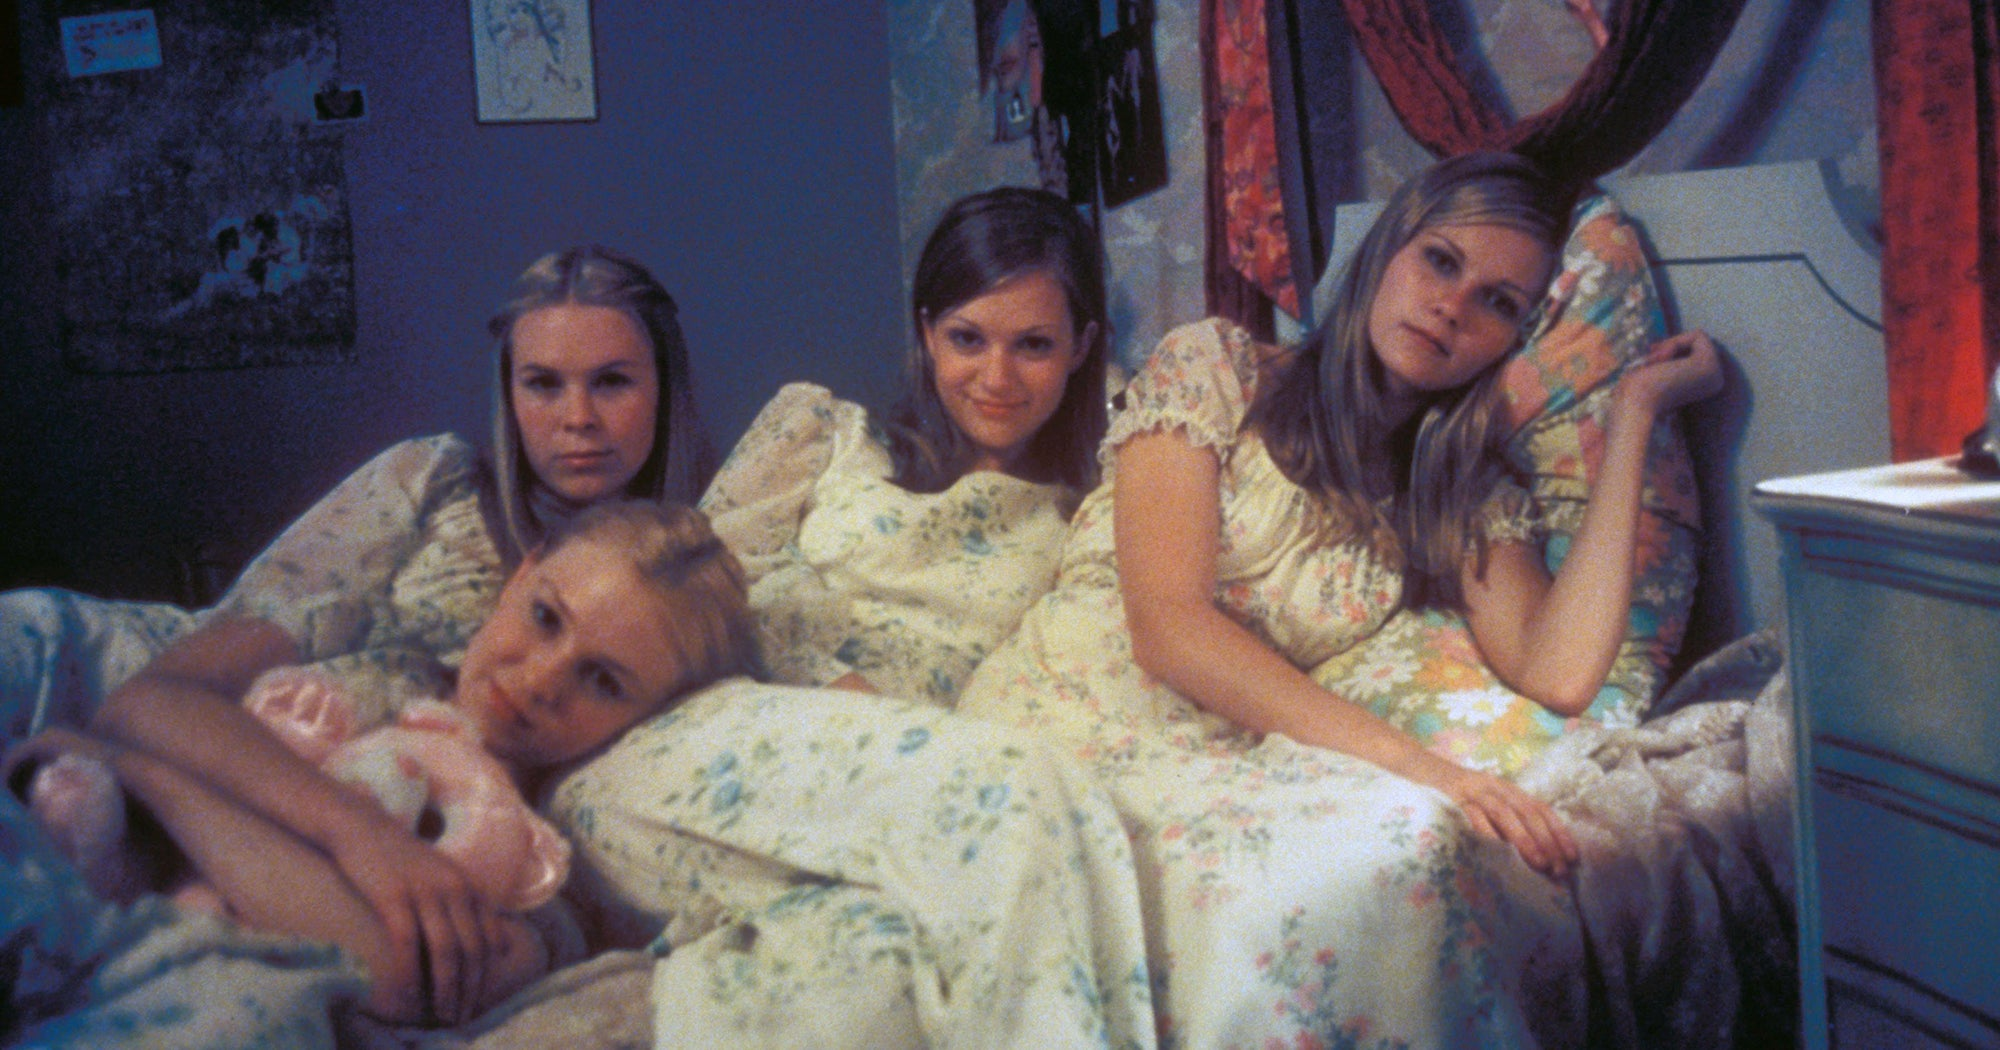 An Ode To Virgin Suicides, The Film That Introduced The Fashion Nightgown